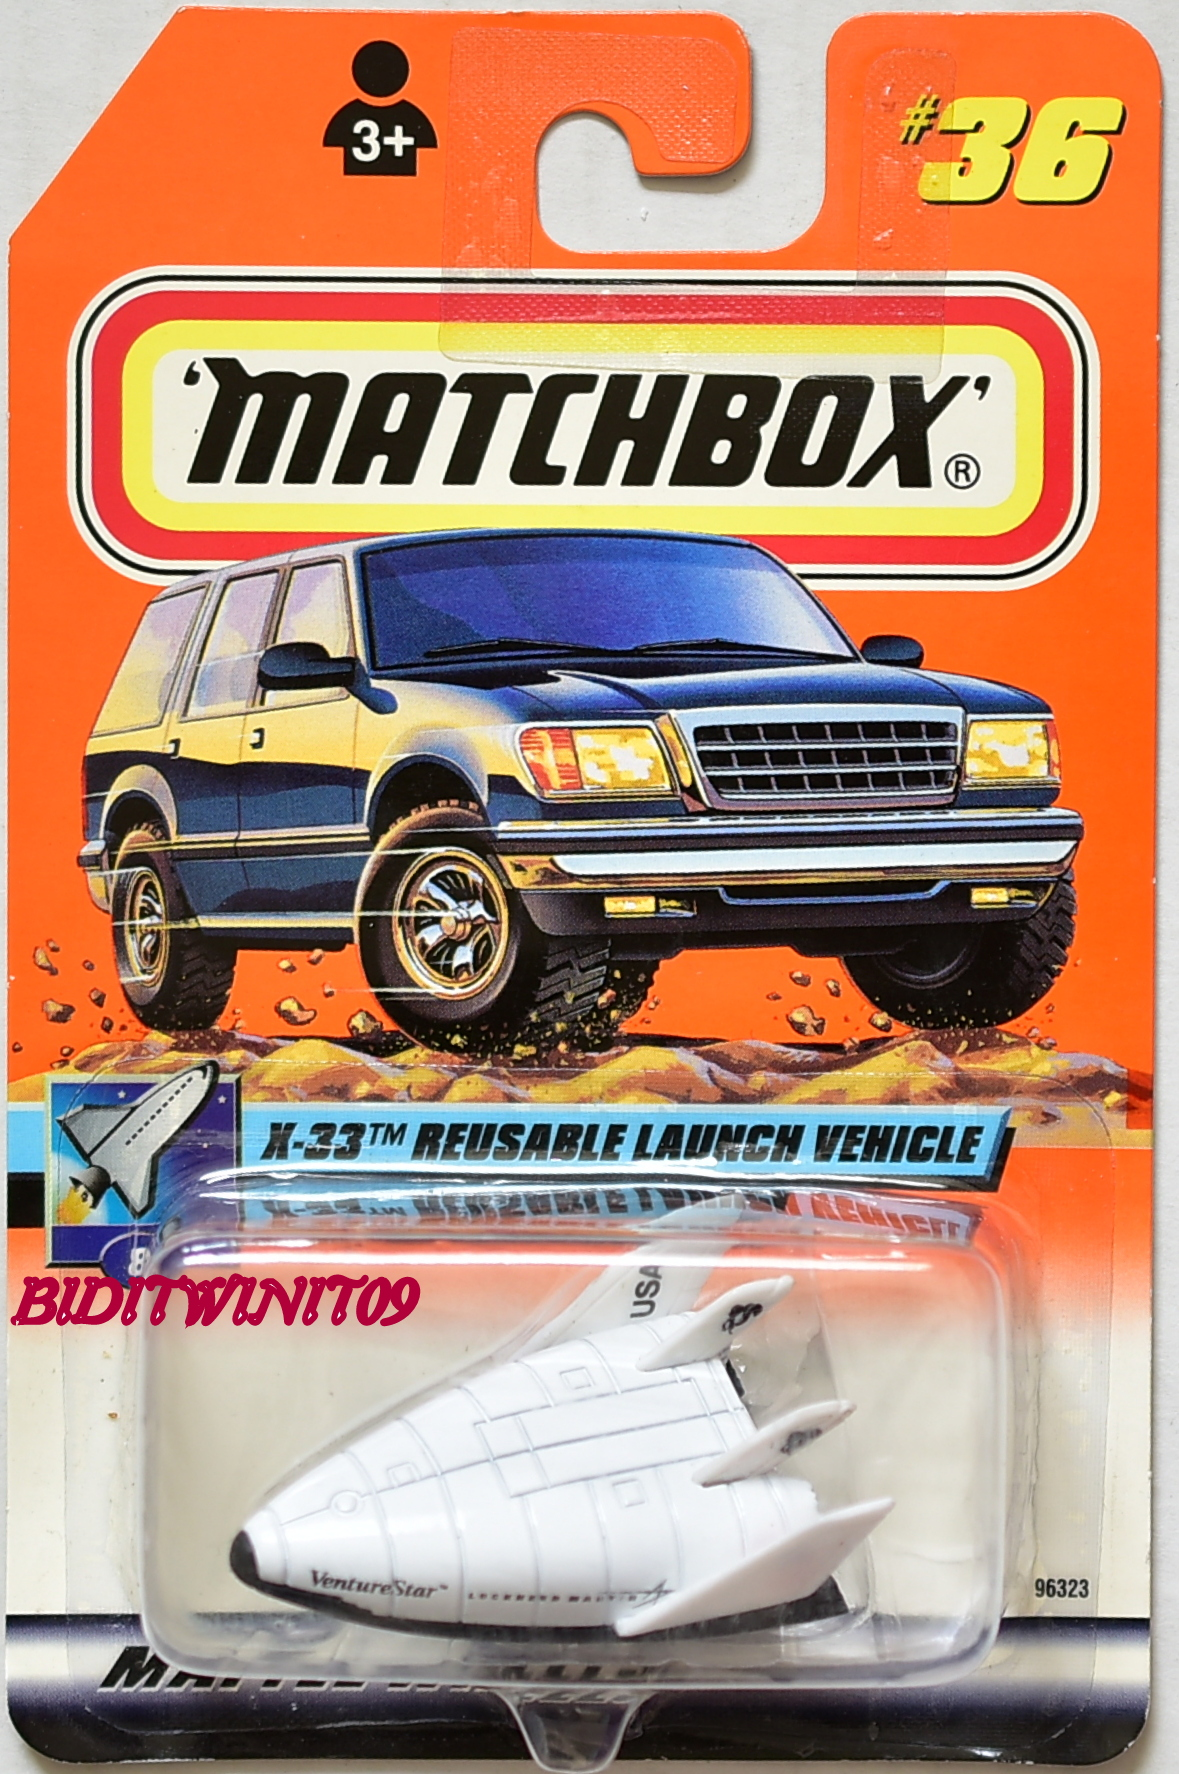 MATCHBOX 2000 #36/100 X-33 REUSABLE LAUNCH VEHICLE FIRST EDITION